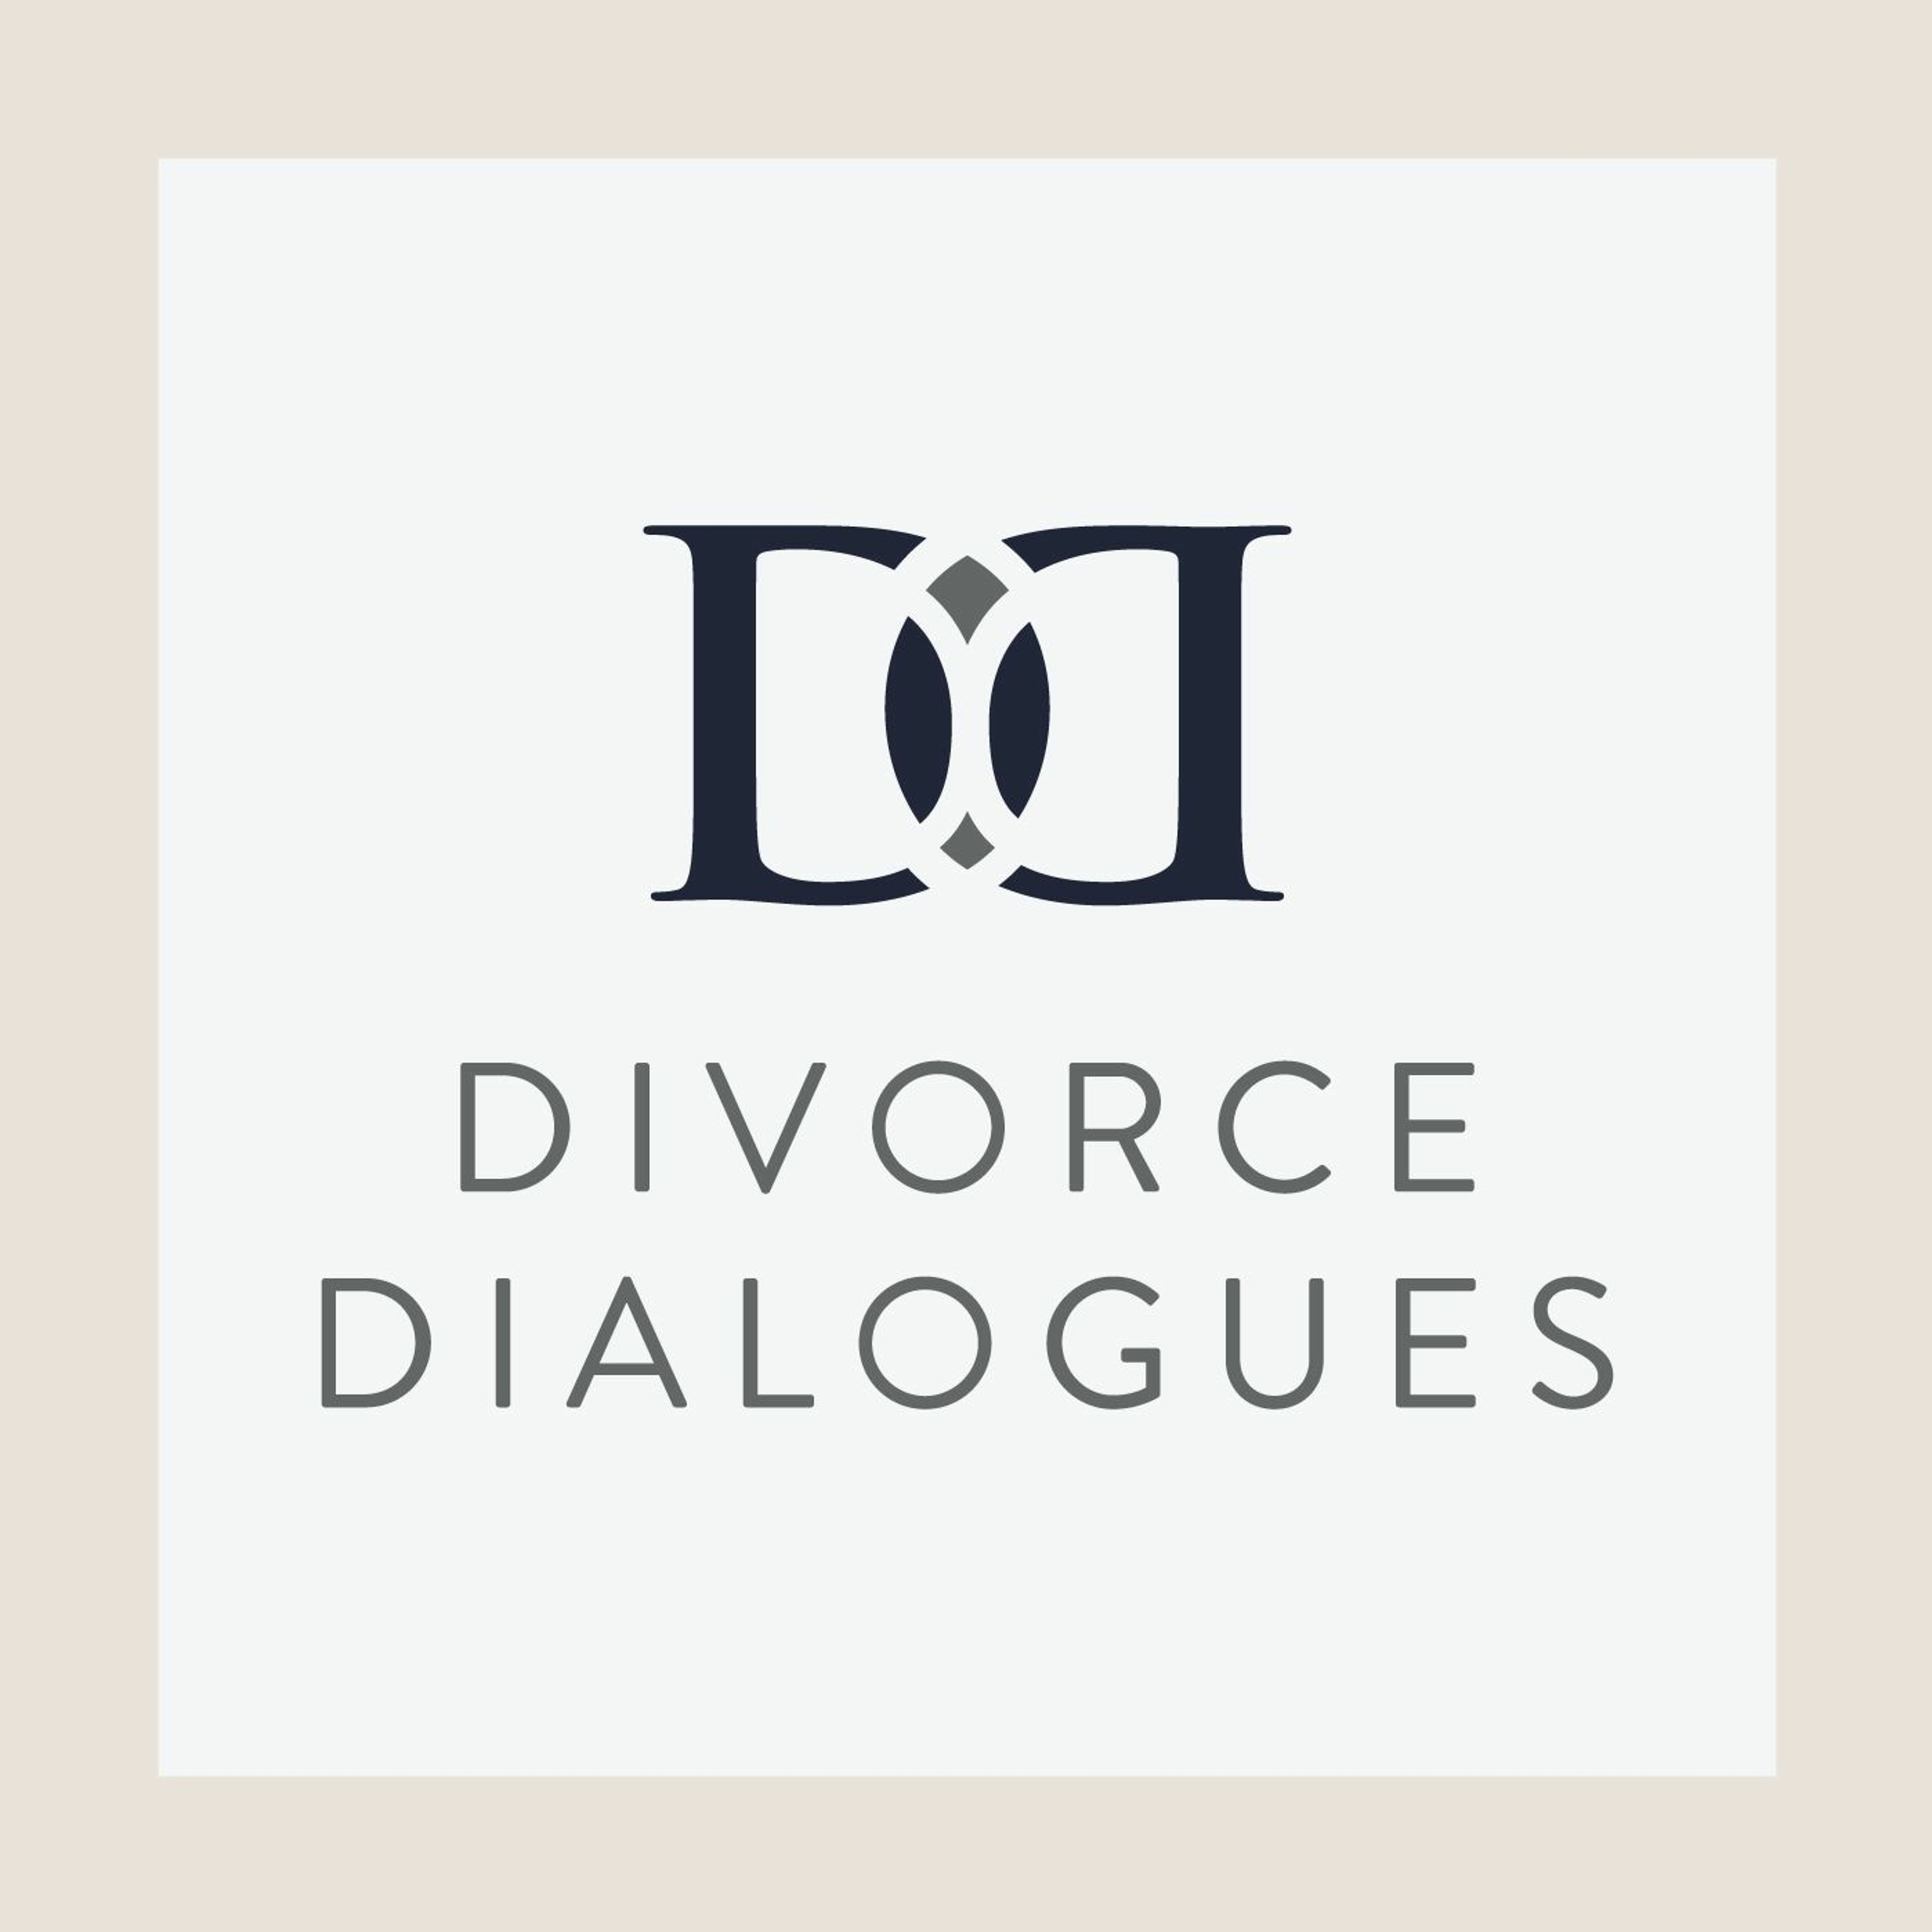 Divorce Dialogues - Process Choice in High-Conflict Divorce with Bill Eddy